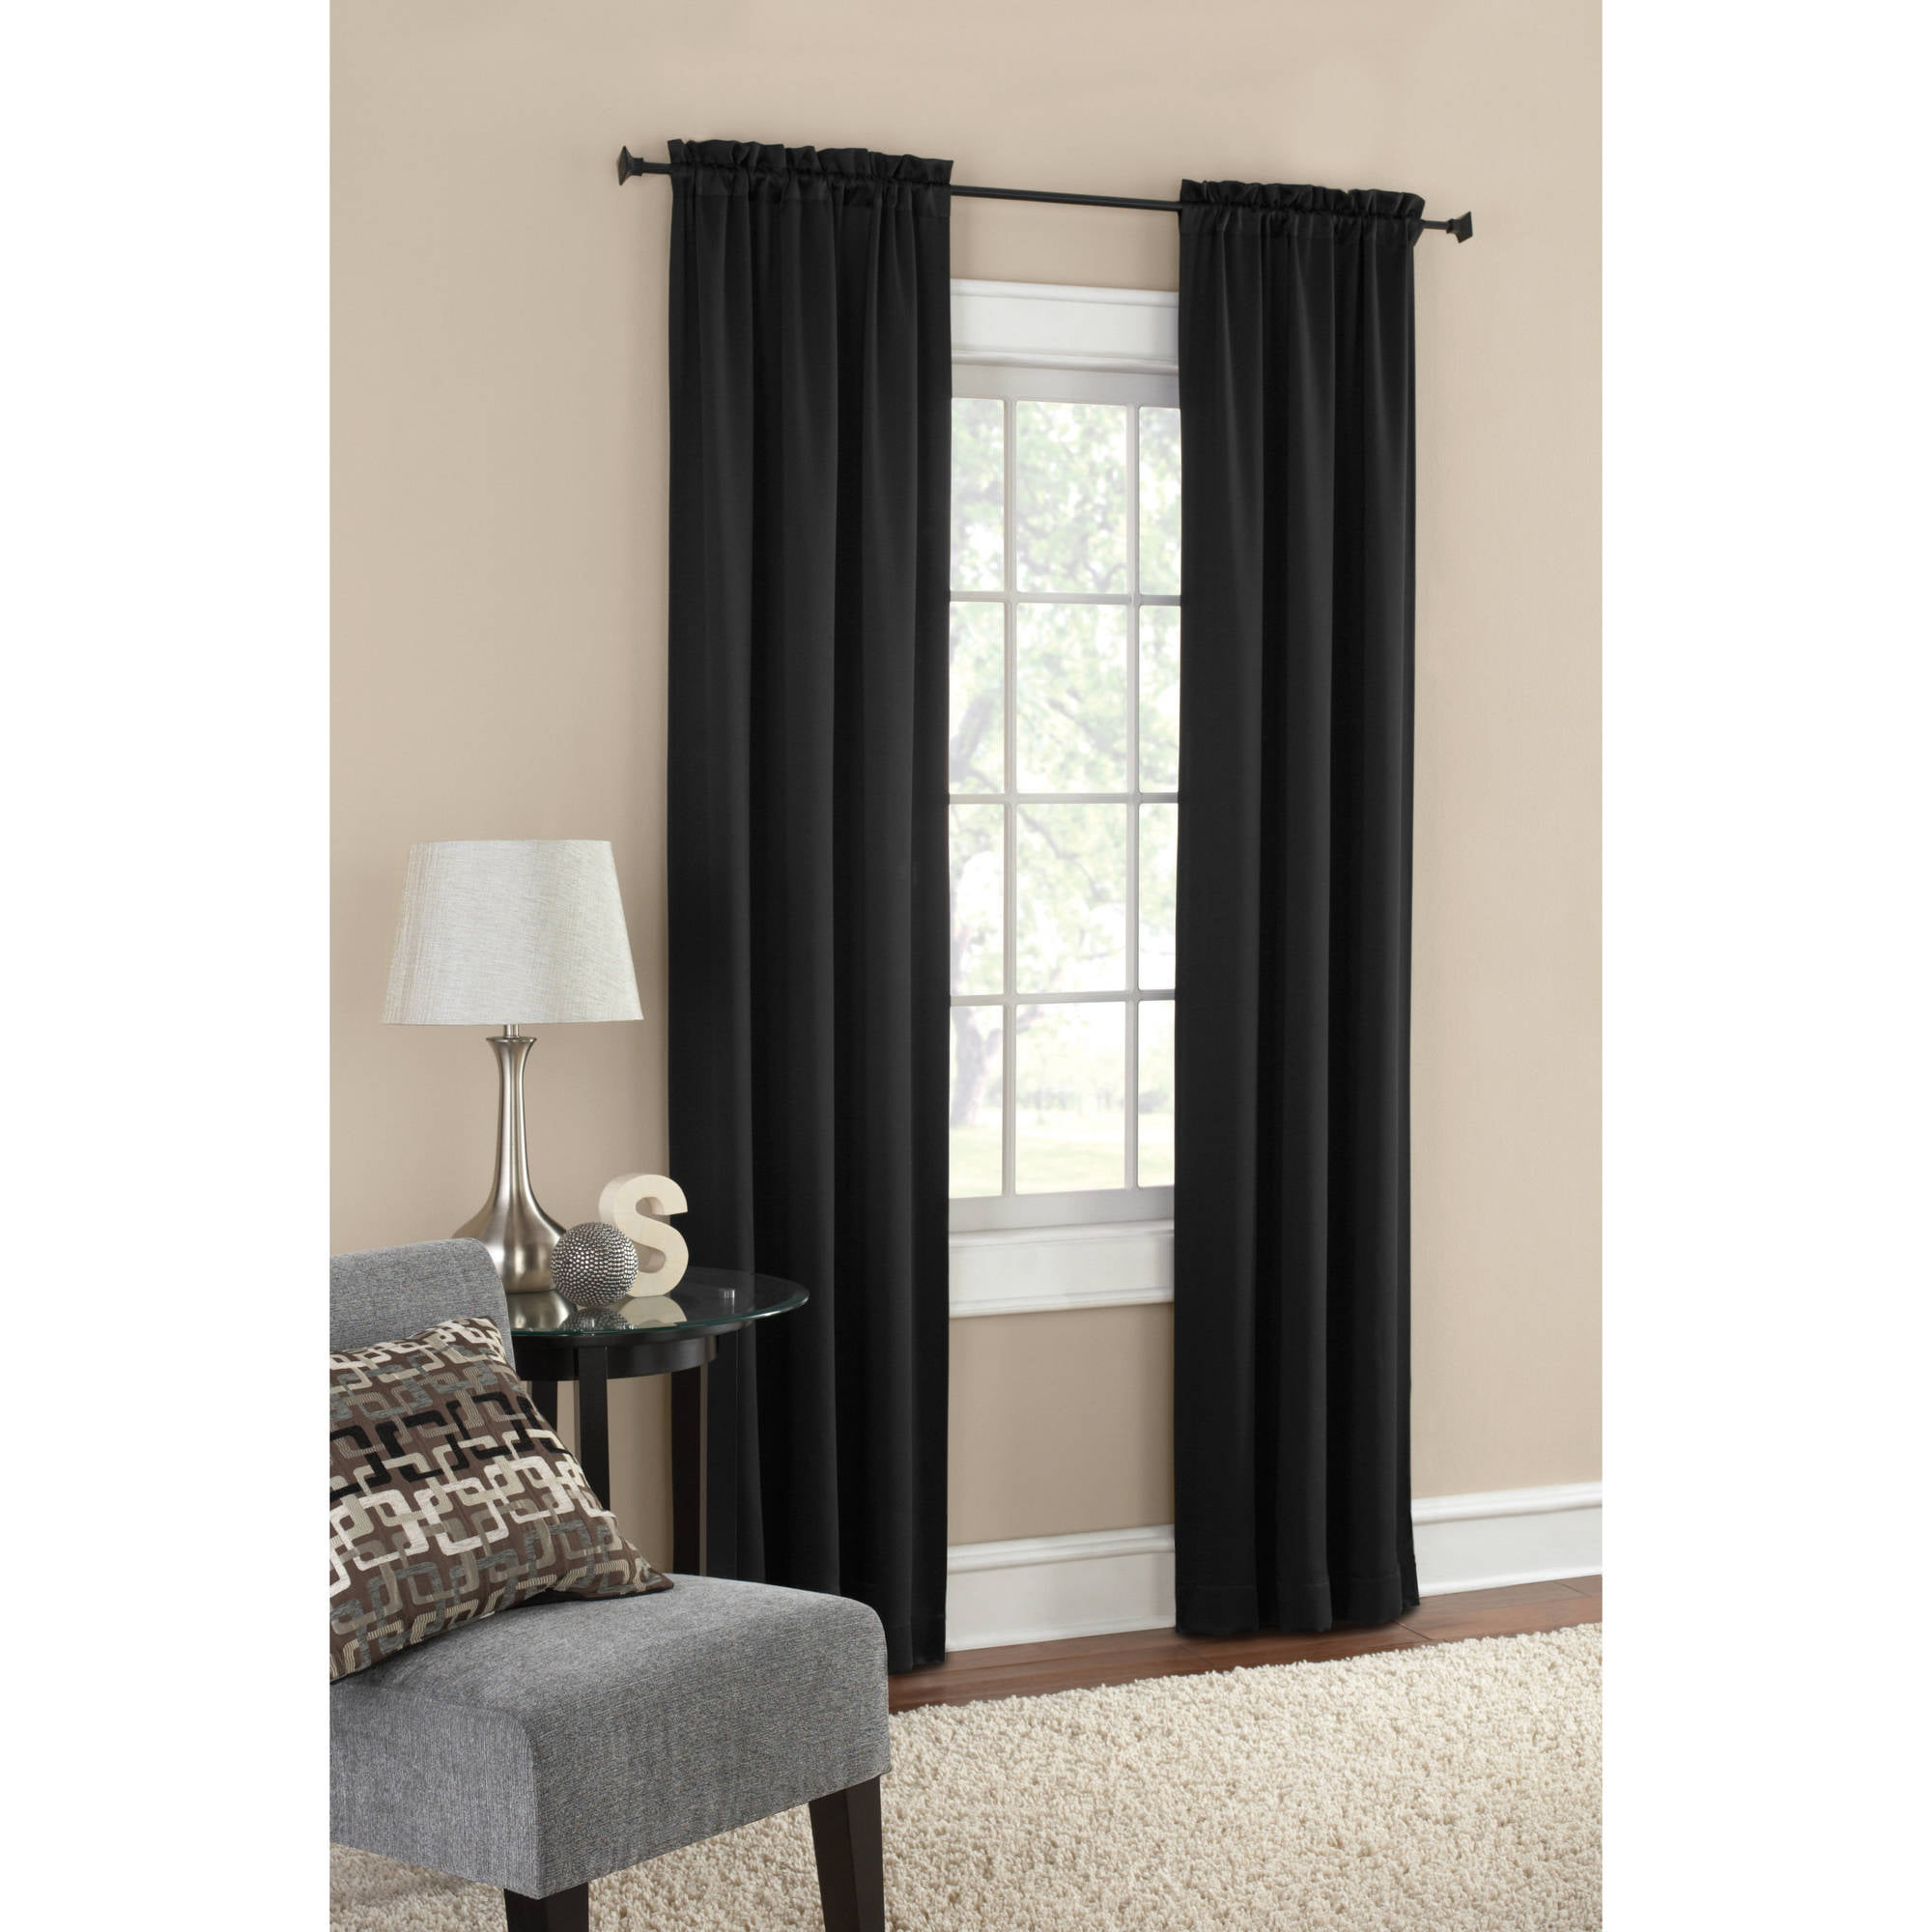 Blackout curtains for bedroom - Mainstays Thermal Solid Woven Window Panel Pair Multiple Colors